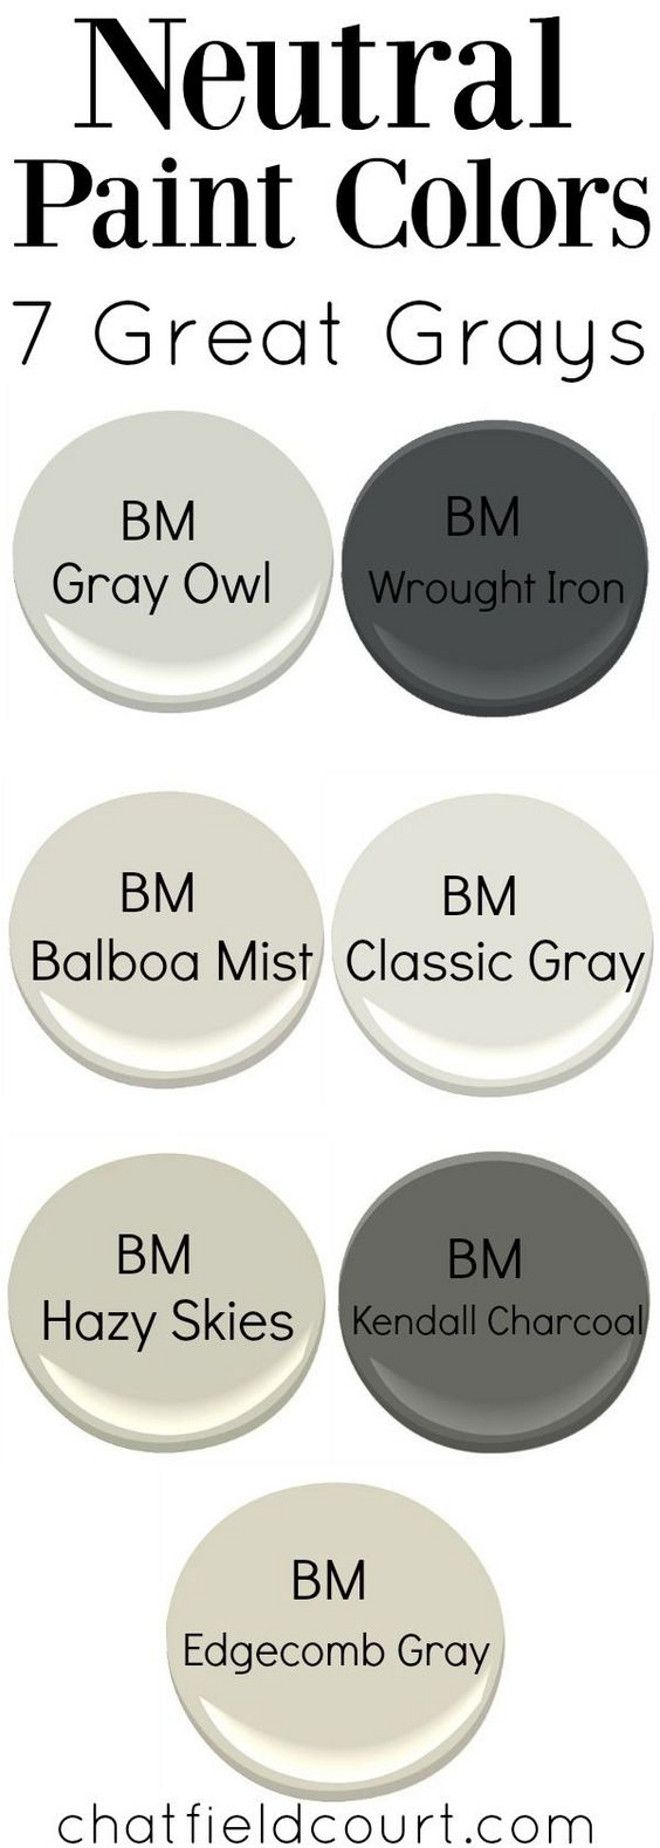 7 Great Gray Paint Colors by Benjamin Moore.